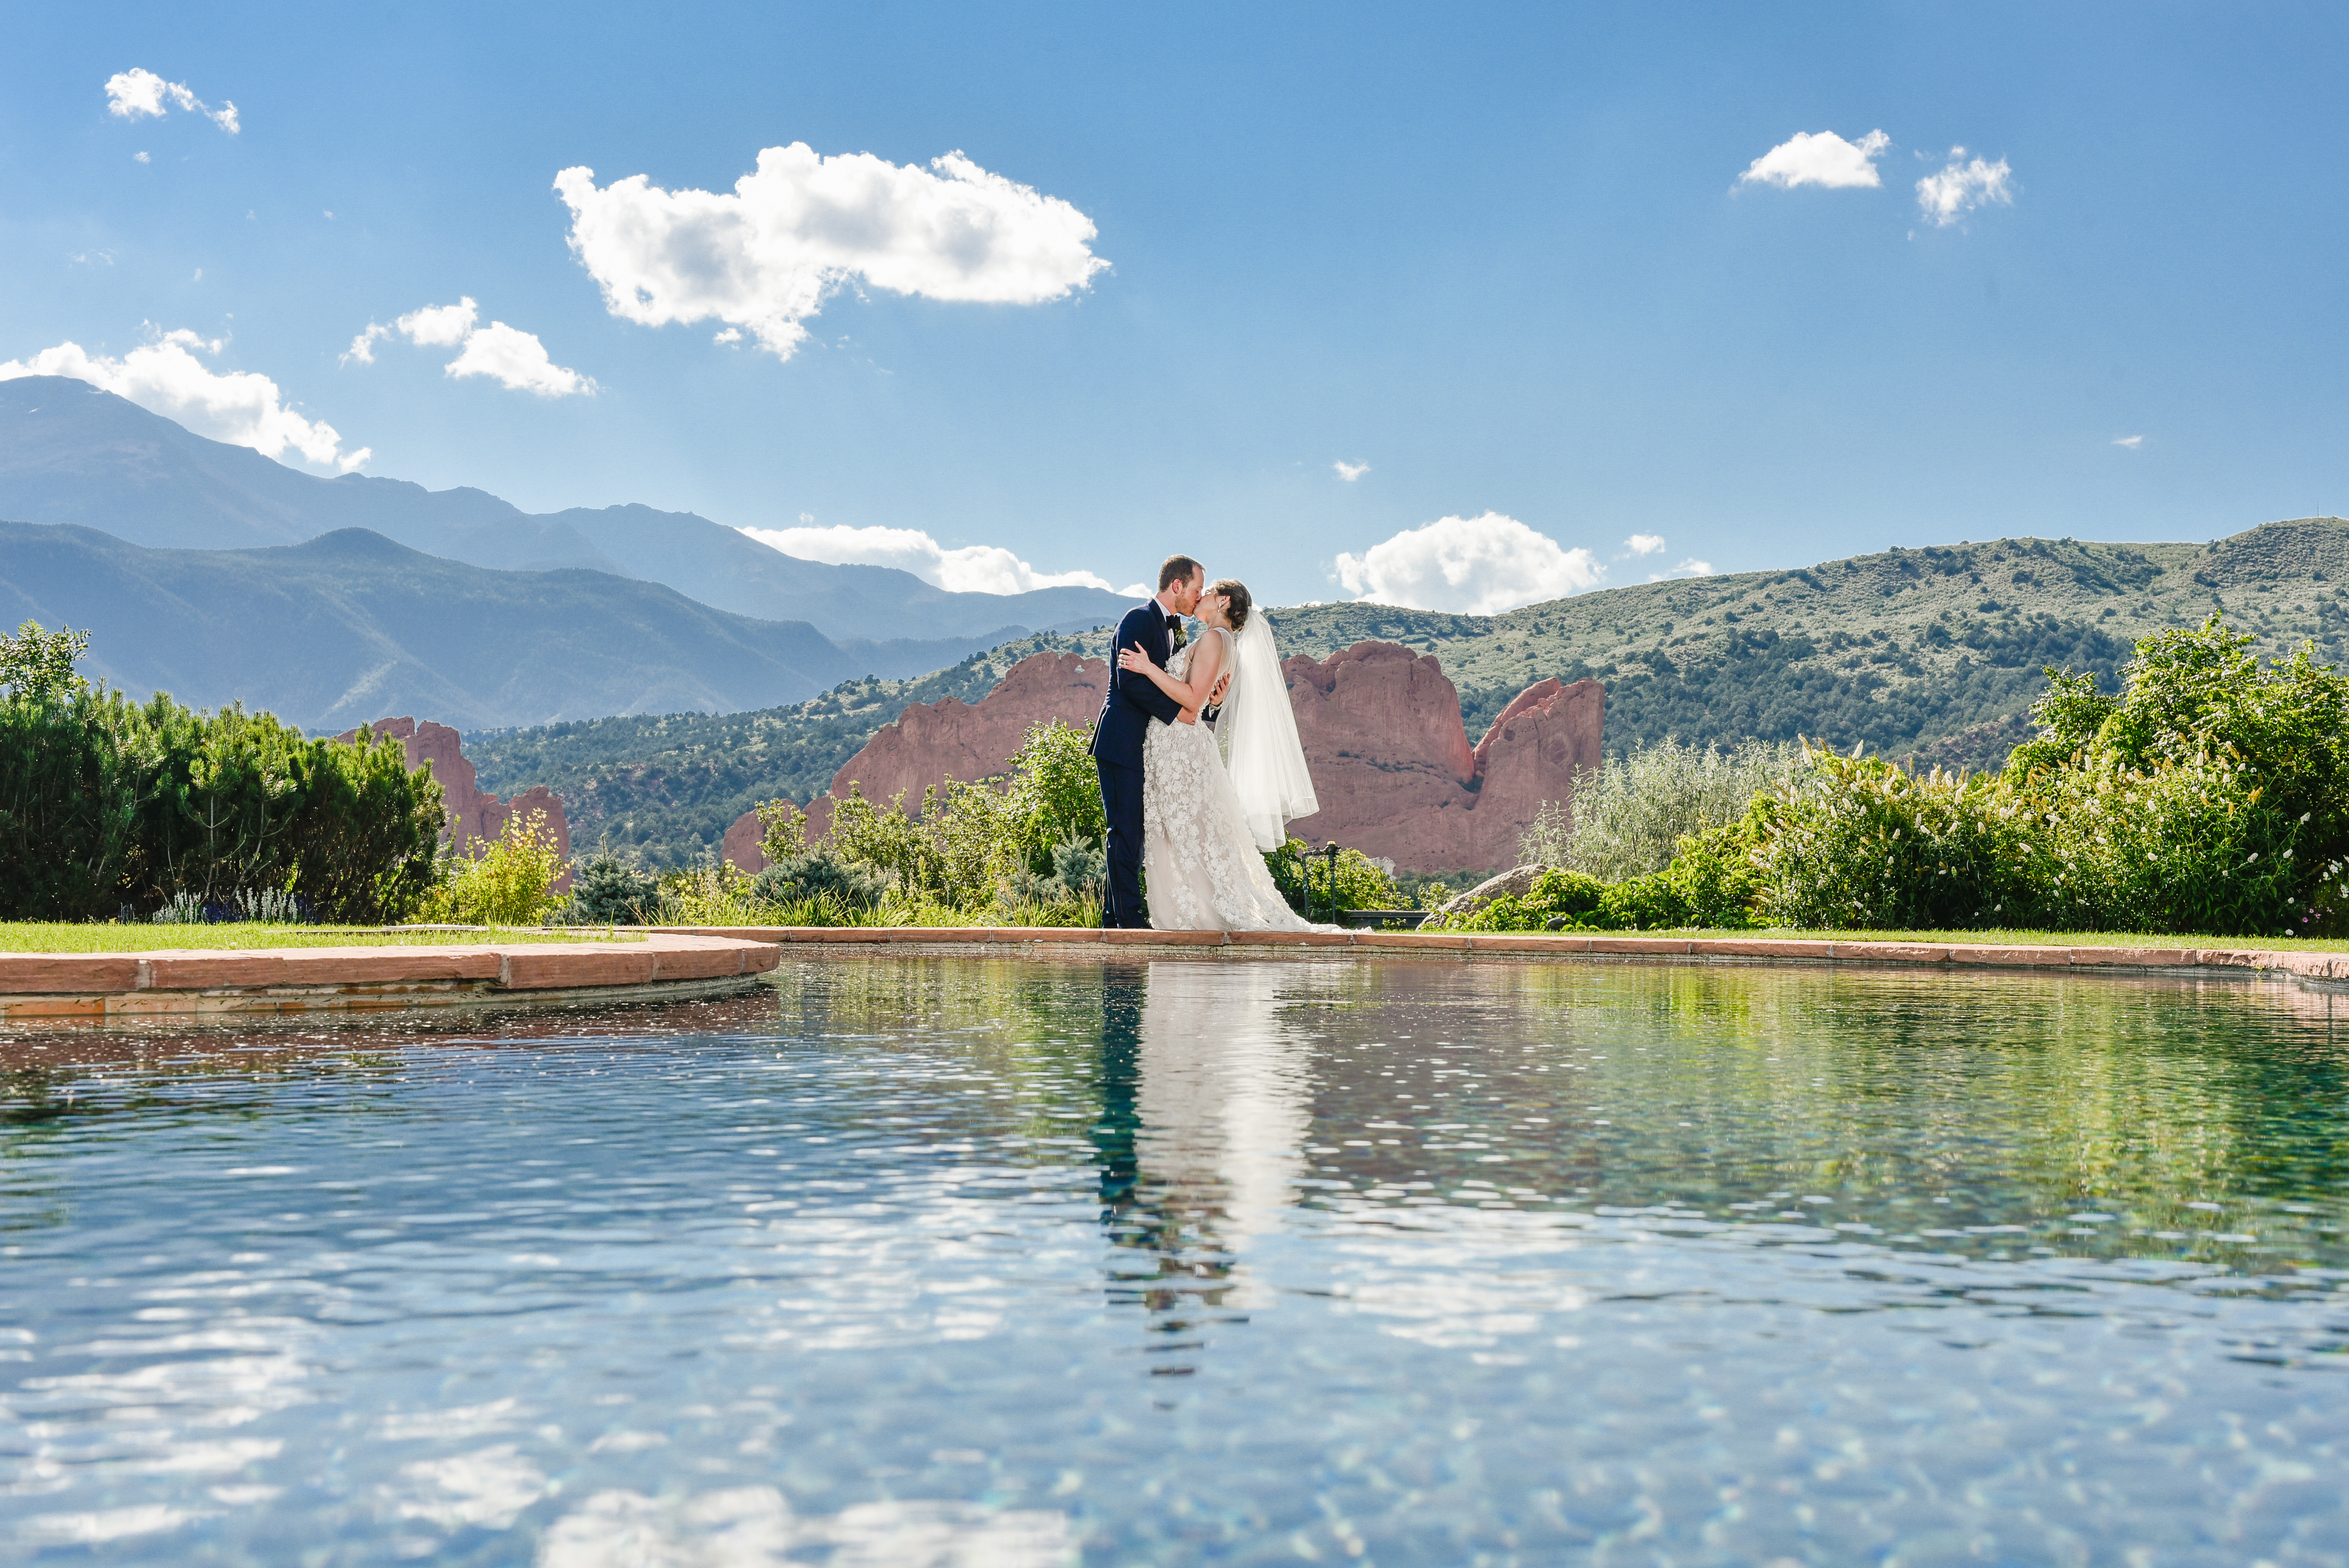 alyssa and jeremys wedding was a hit it was so fun and full of life you could tell that everyone was having a great time this was highly observed at the - Garden Of The Gods Club